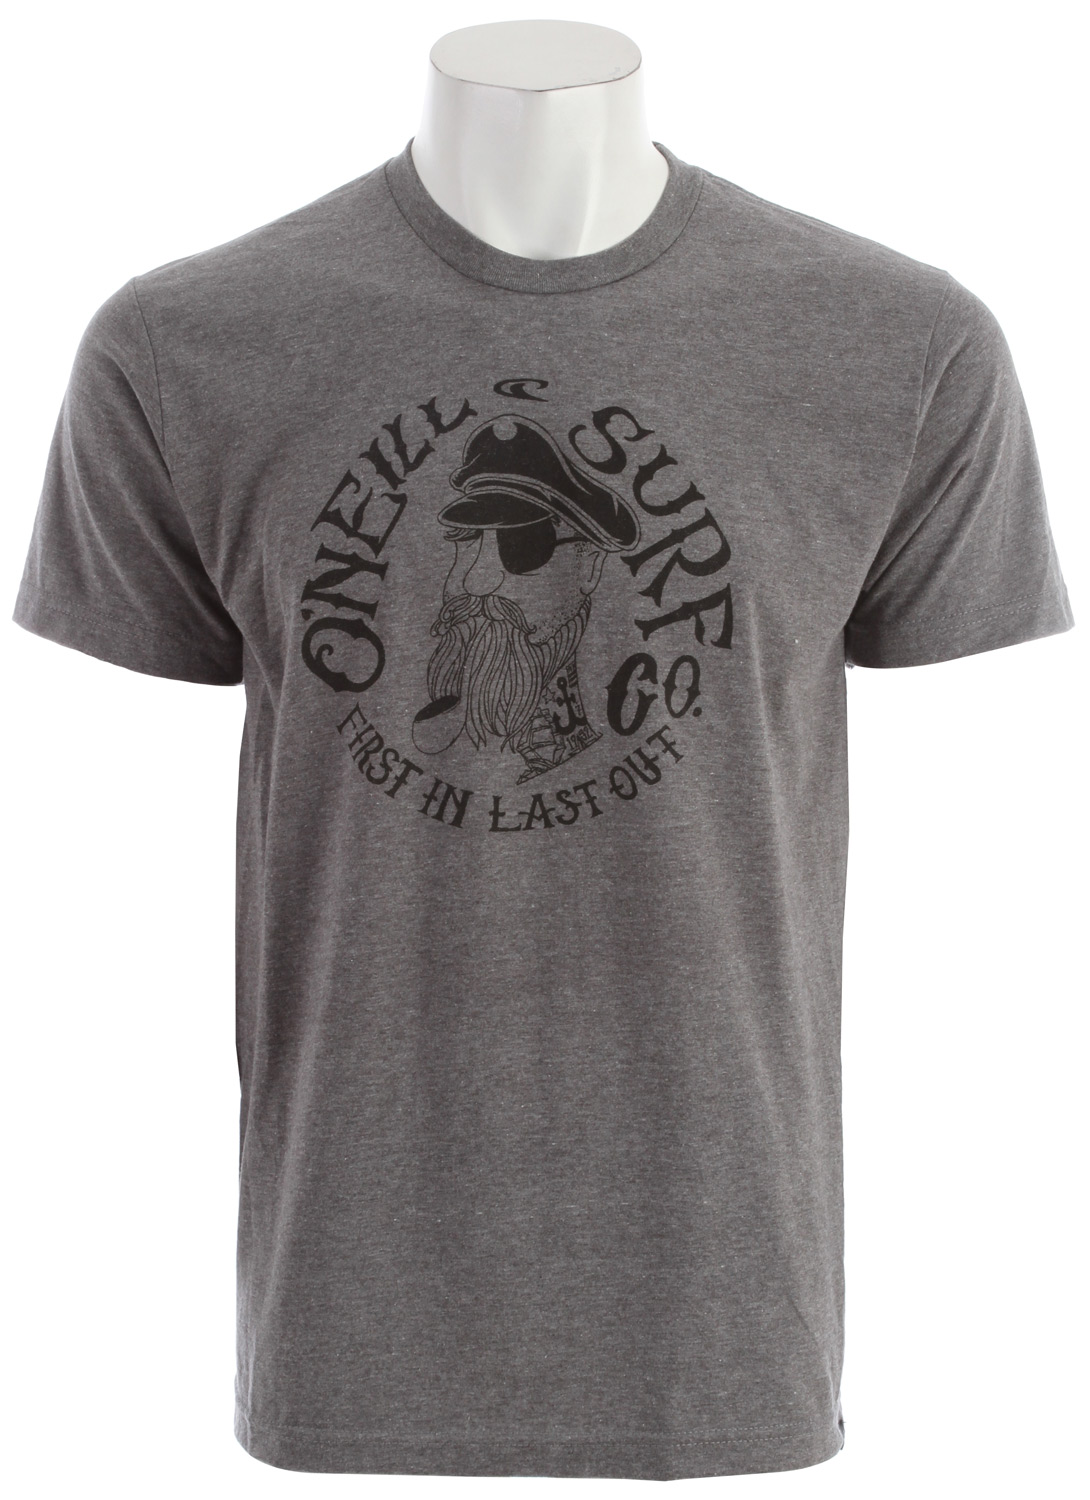 Surf Key Features of the O'Neill Sink Ship T-Shirt: 50% Cotton / 50% Poly 30 Singles Modern Fit Heather Tee Softhand Screenprint Attached hem label - $16.95